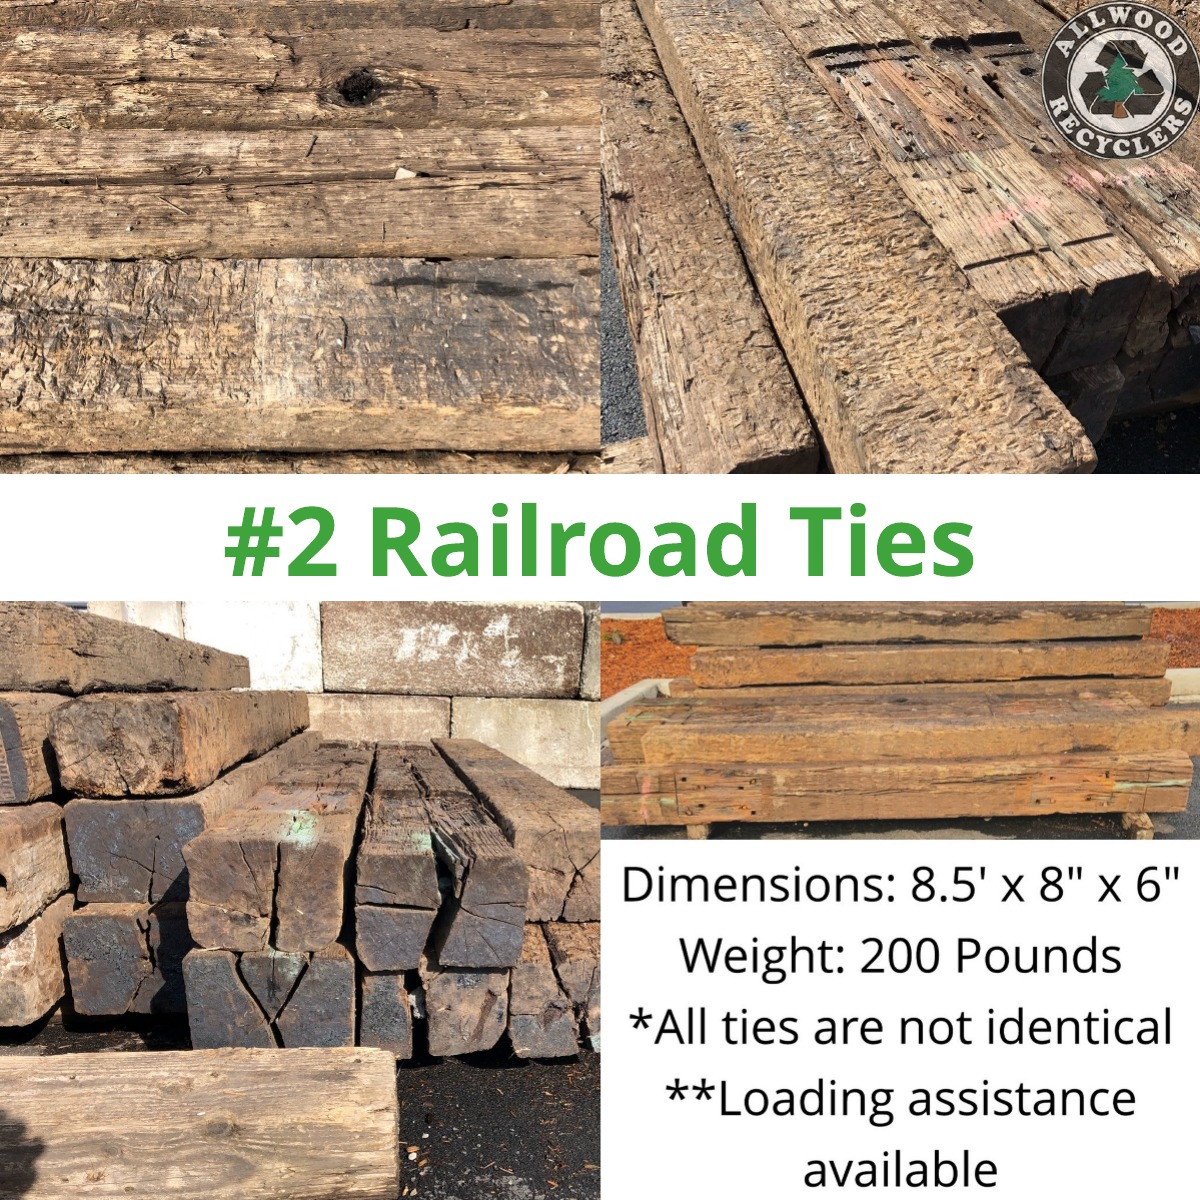 #2 Railroad Ties